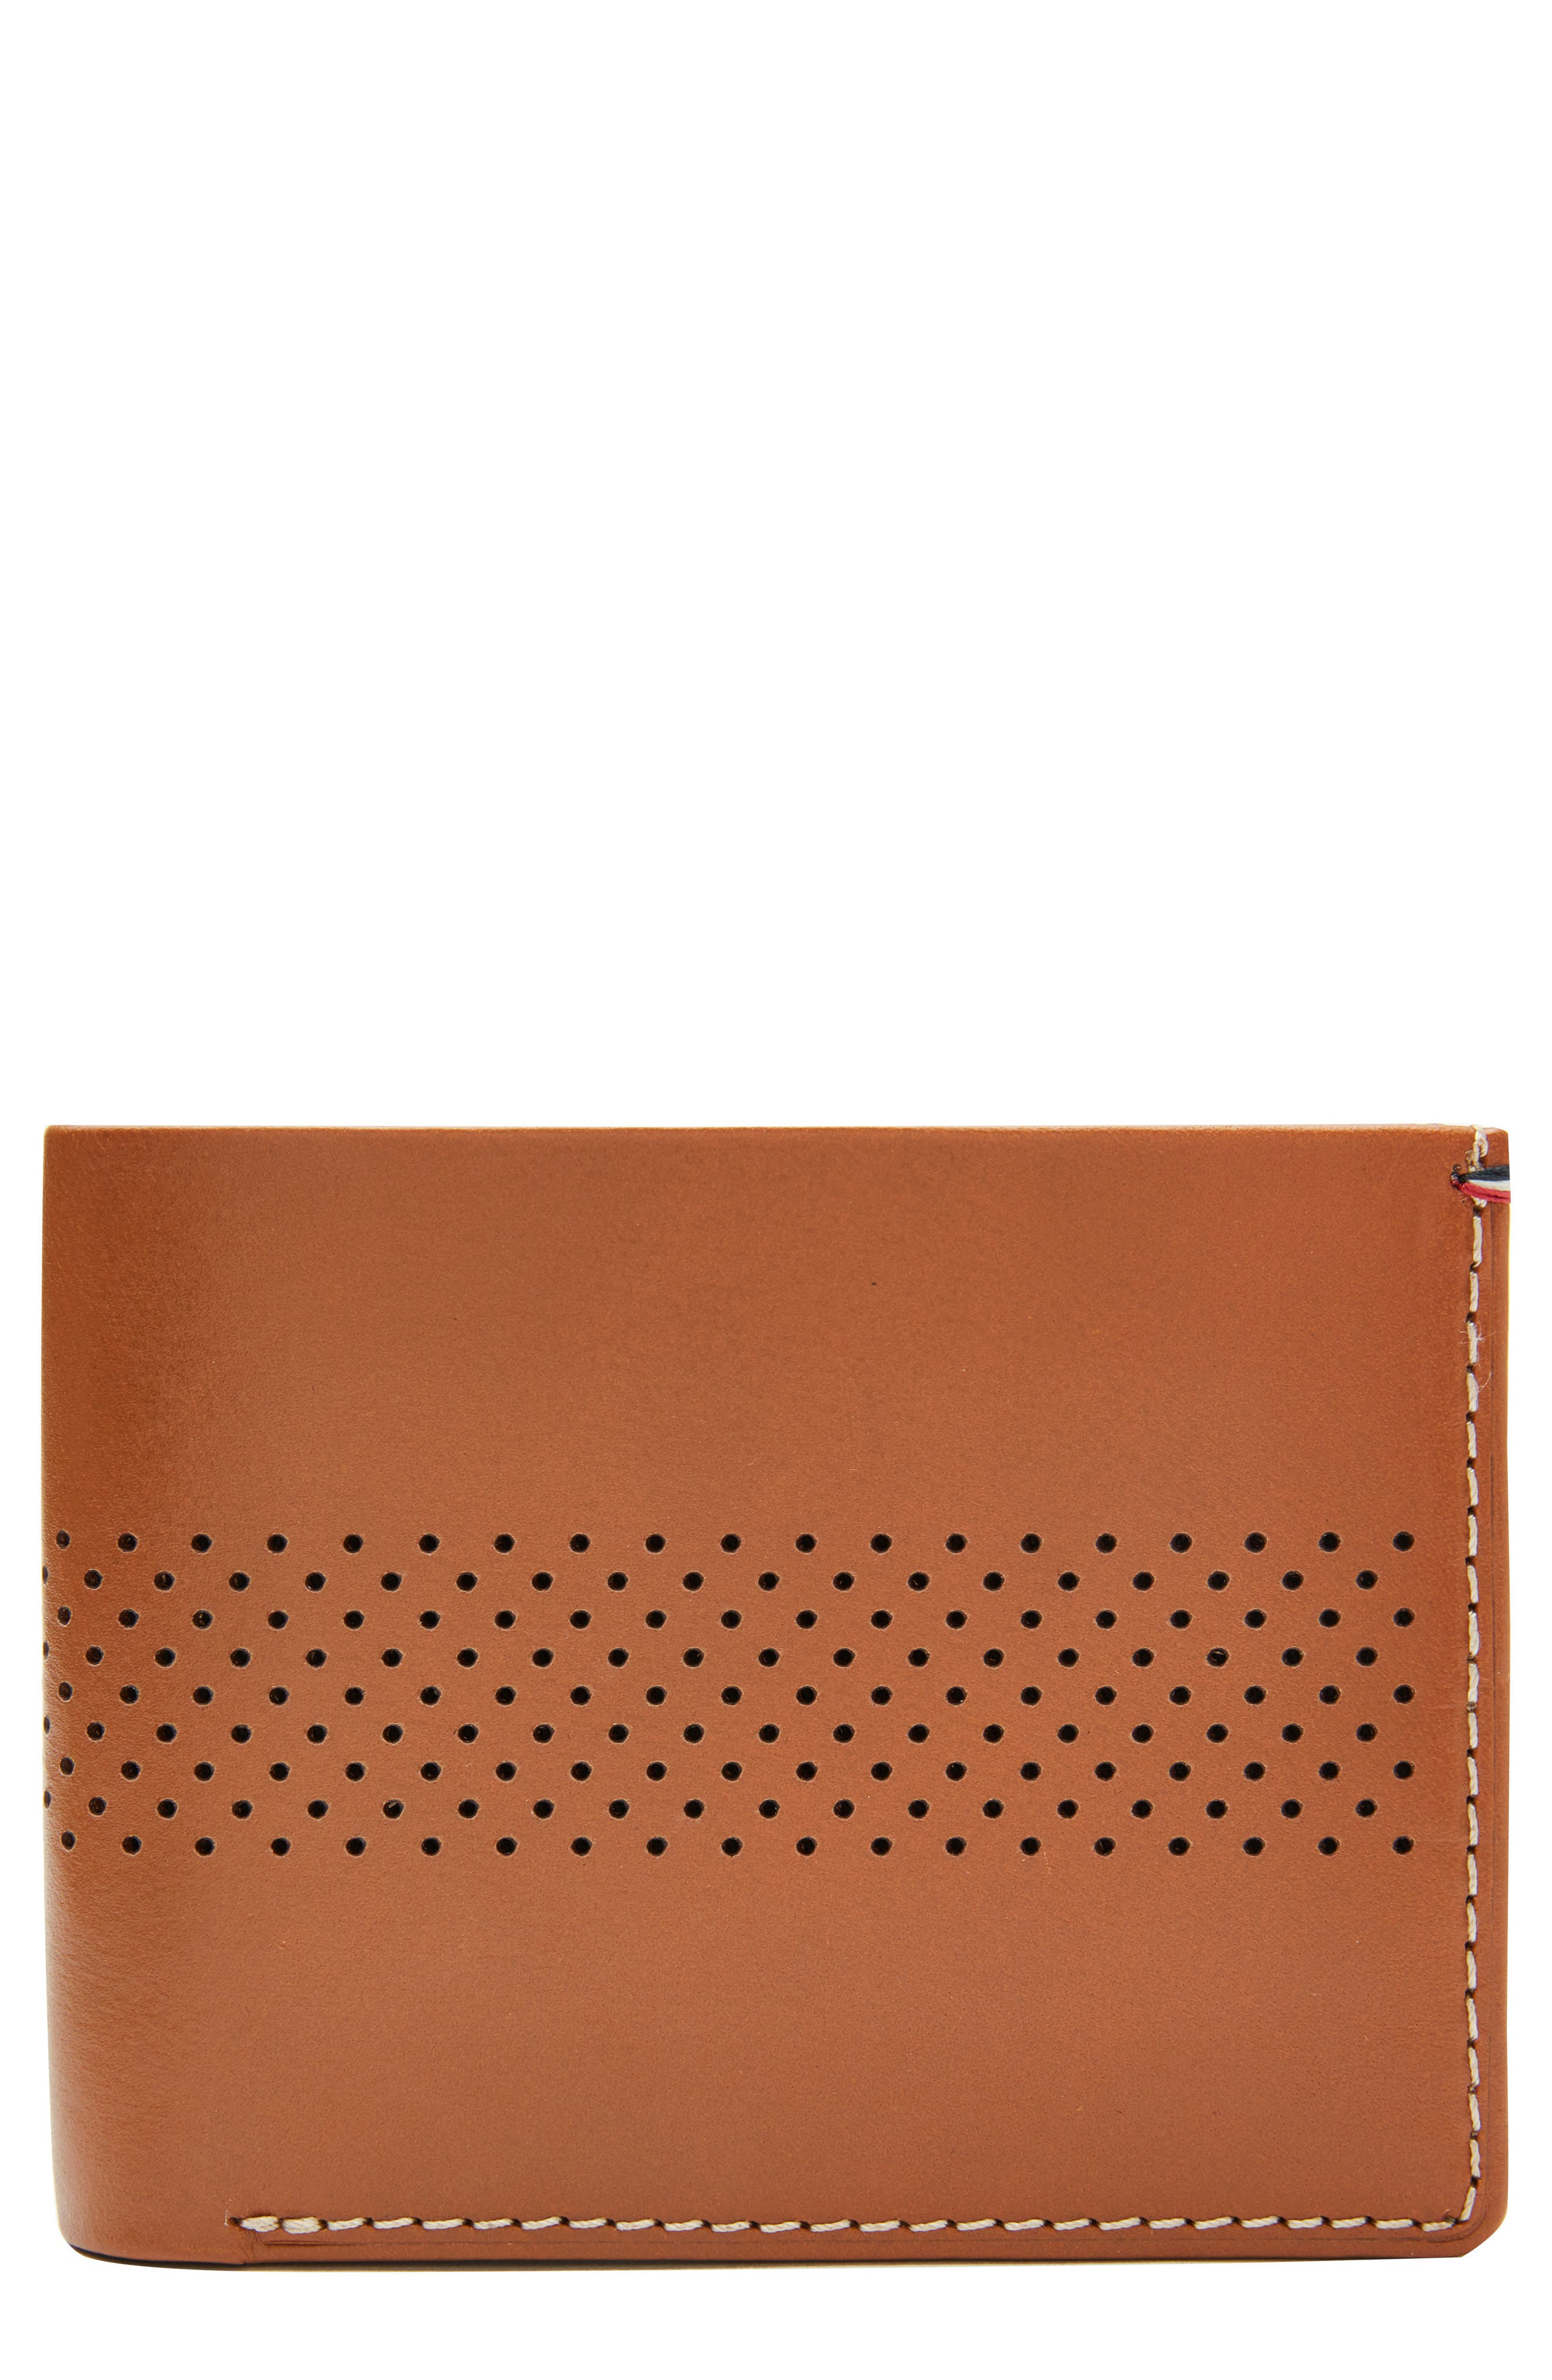 Leather Wallet,                         Main,                         color, 250